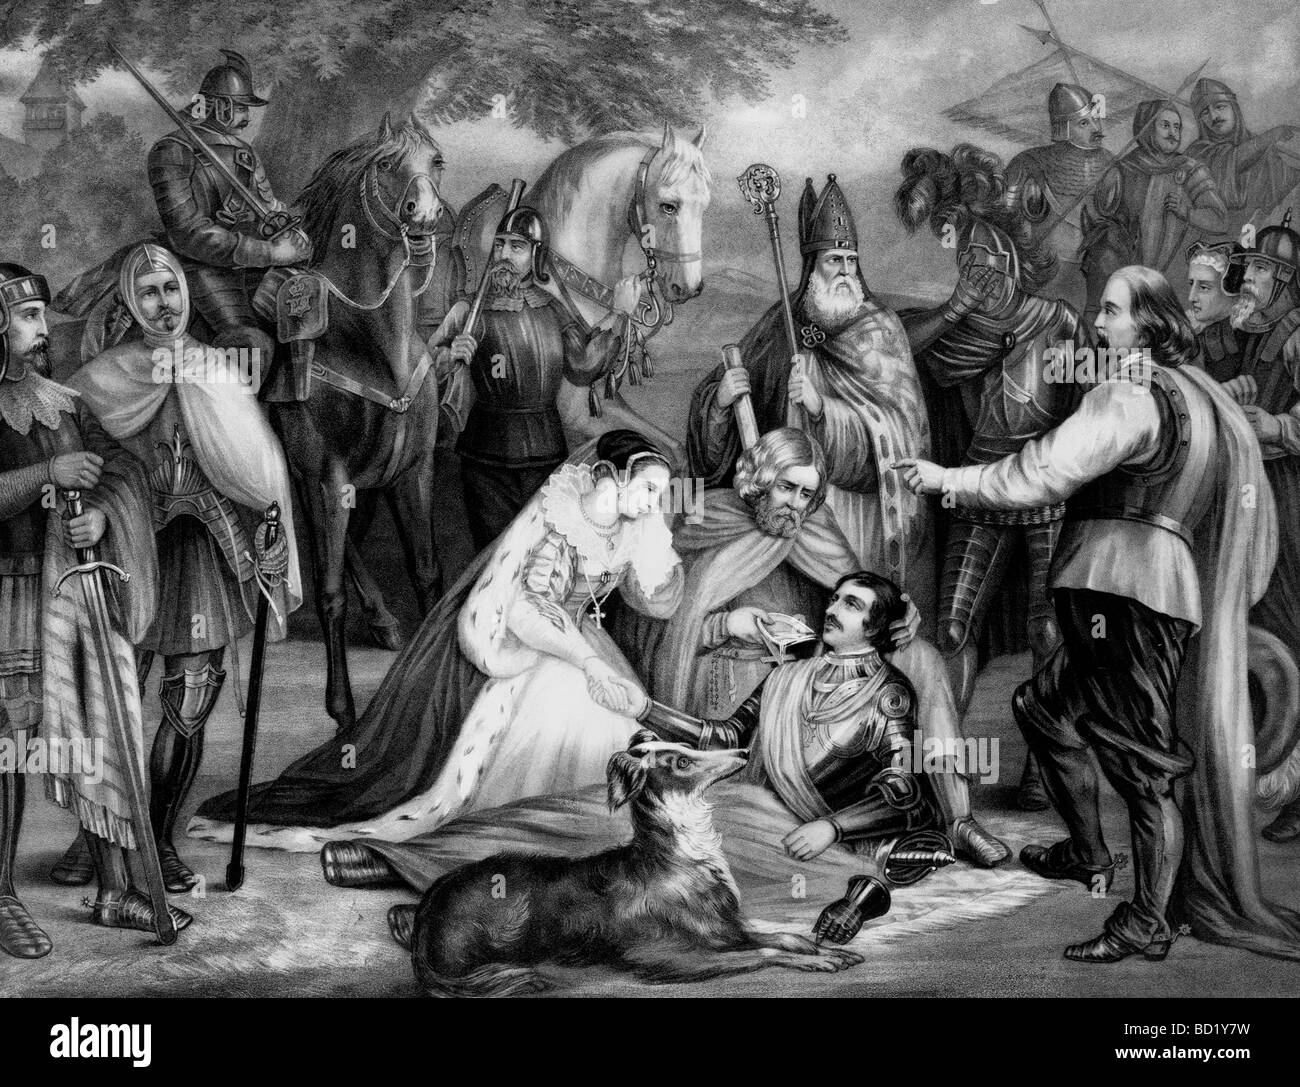 Mary of Scotland mourning over the dying Douglas at the Battle of Langside, 1568 Stock Photo